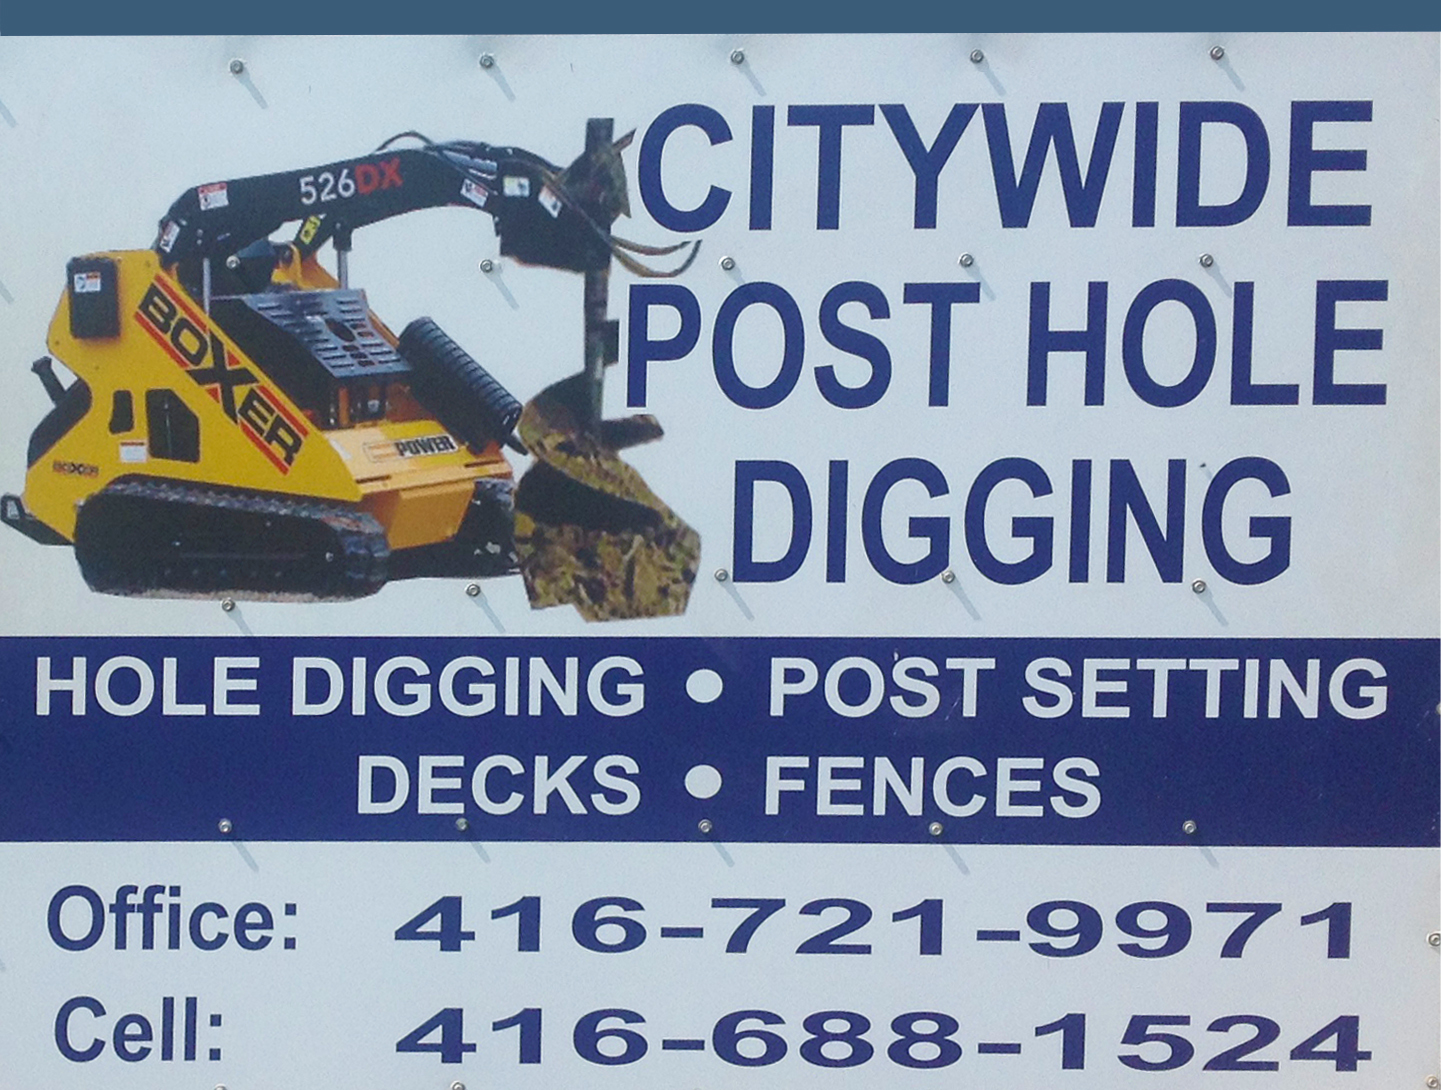 citywide post hole digging ad